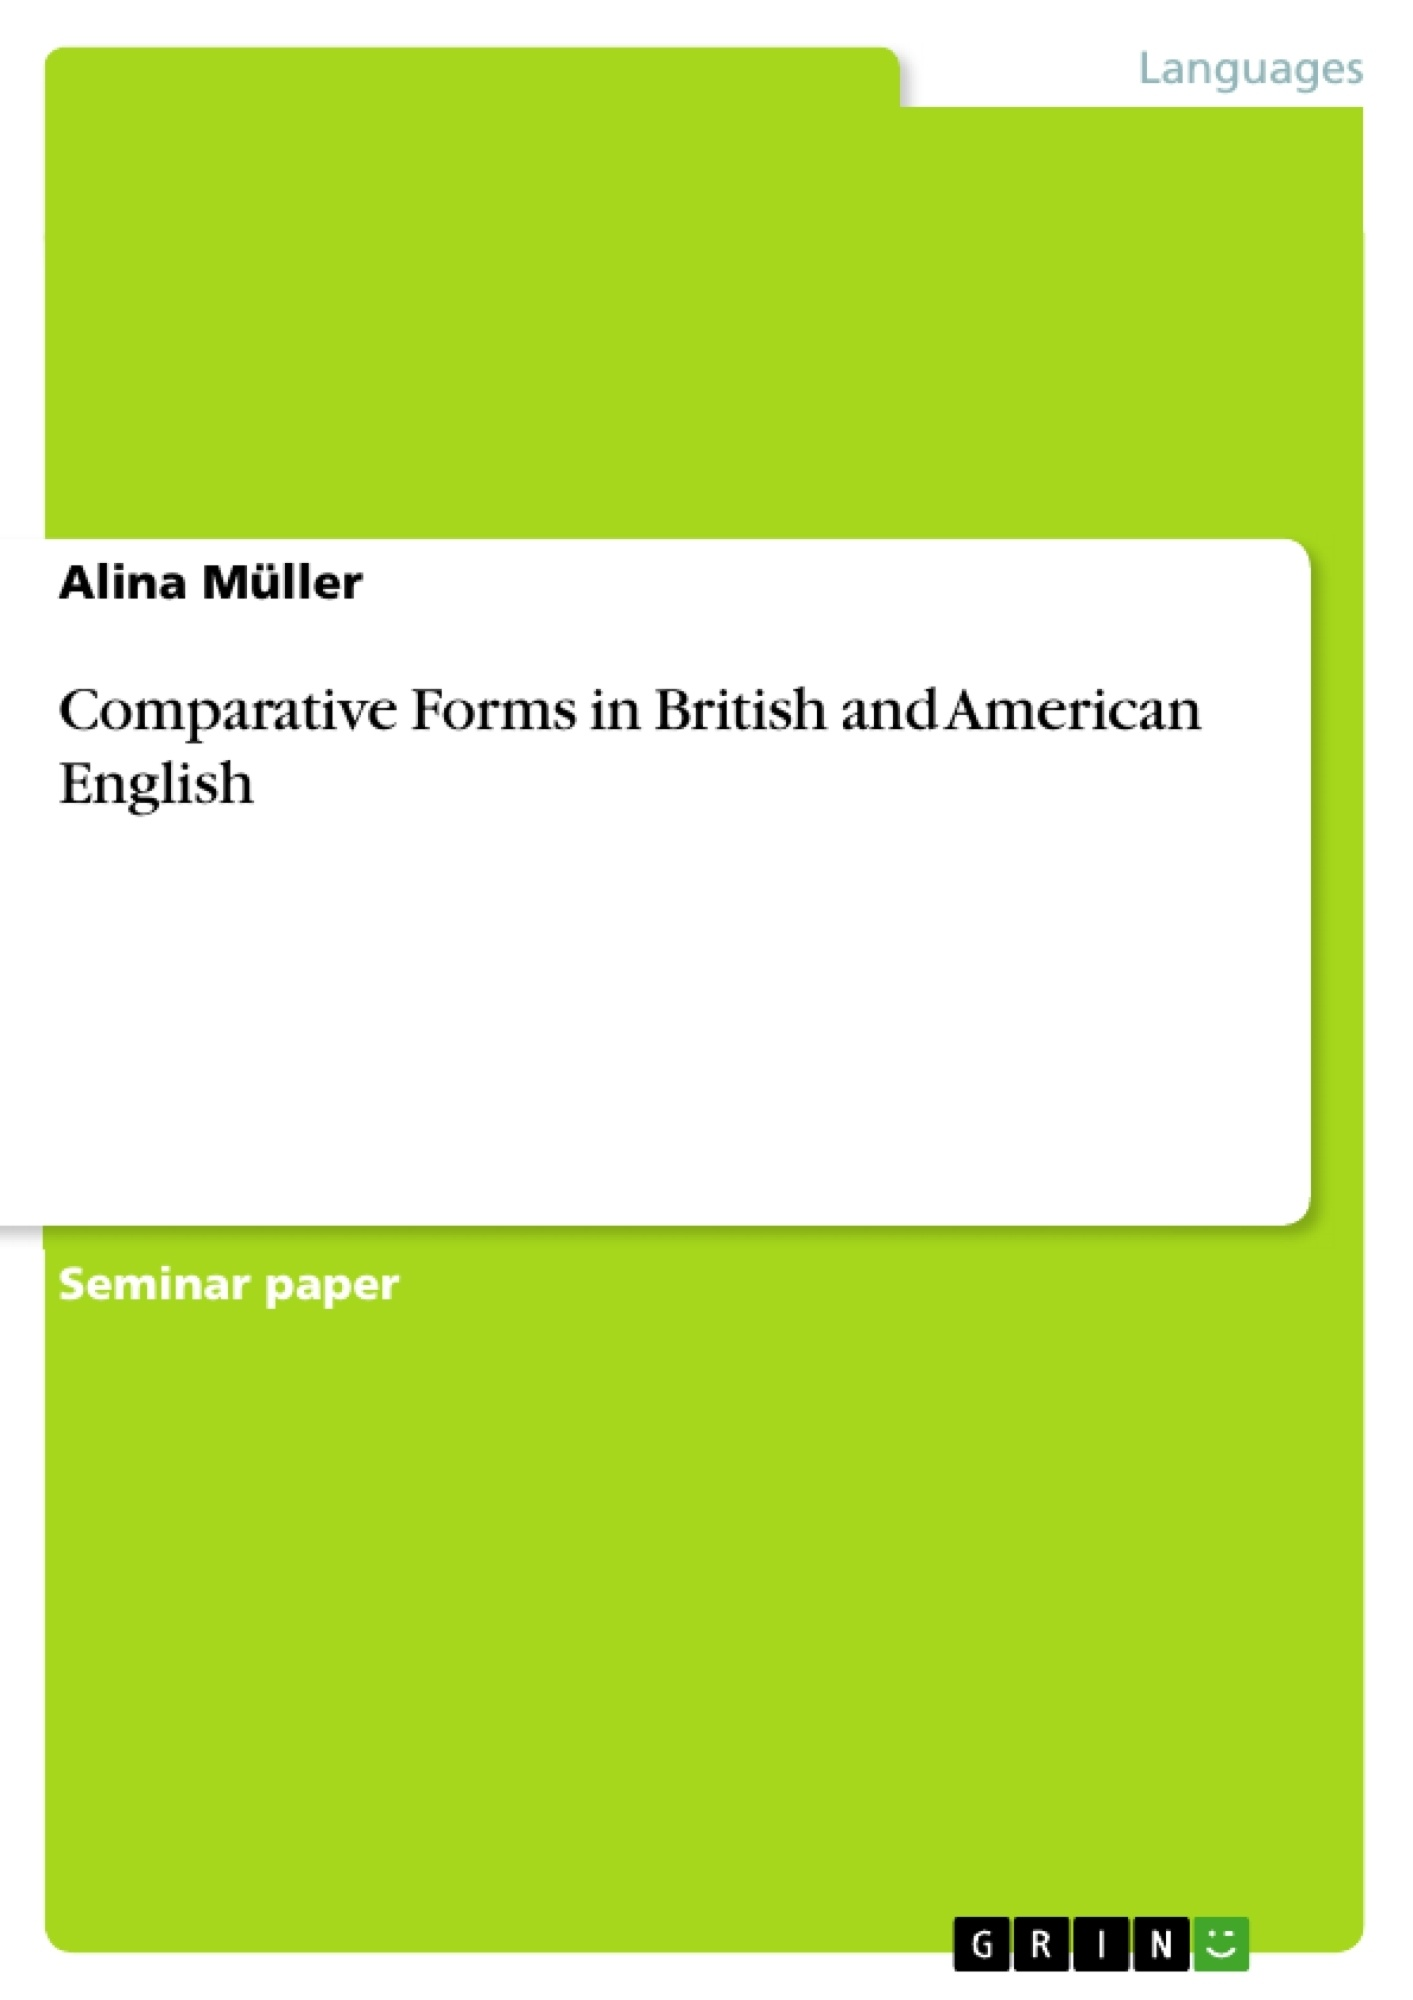 Title: Comparative Forms in British and American English